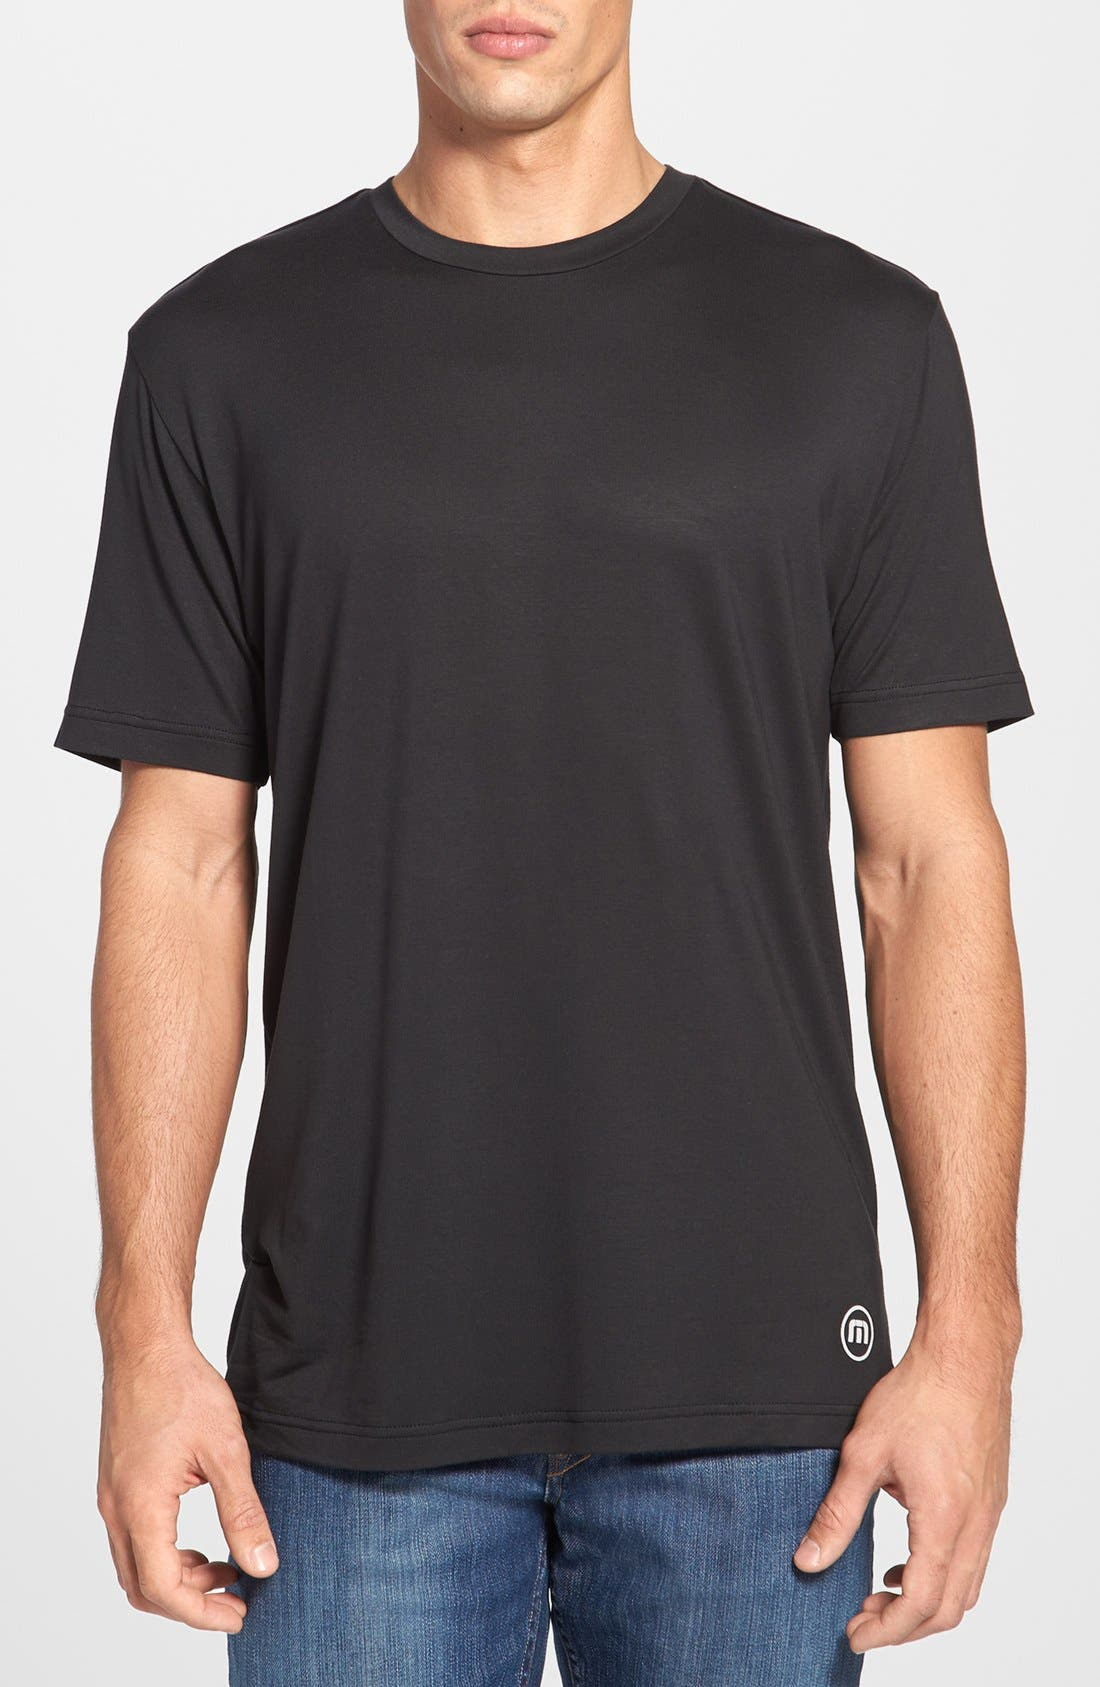 Main Image - Travis Mathew 'Upshall' Trim Fit T-Shirt